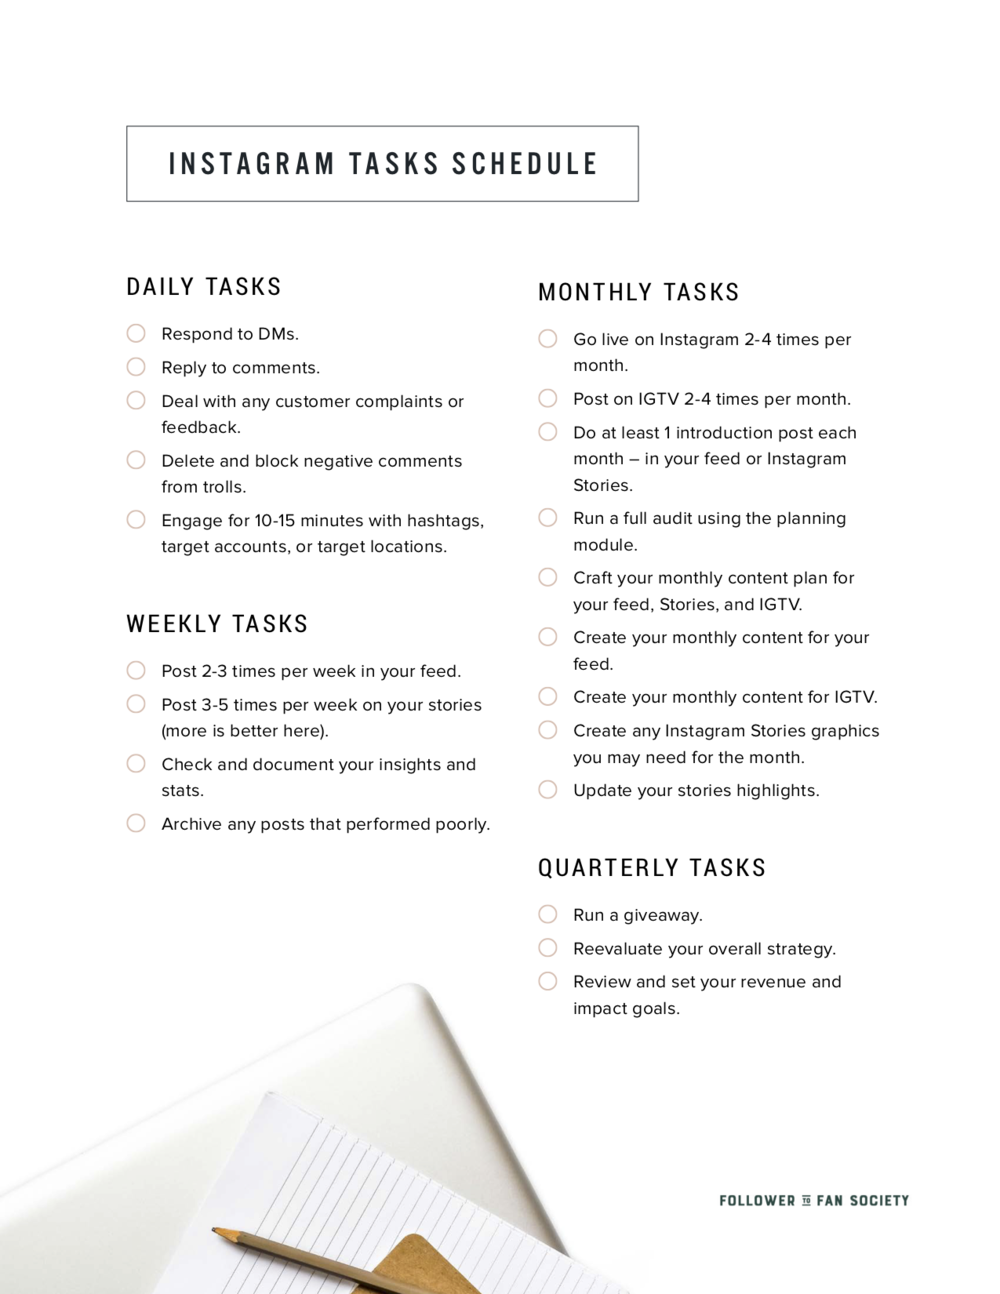 tylerjmccall_instagram-tasks-schedule.png